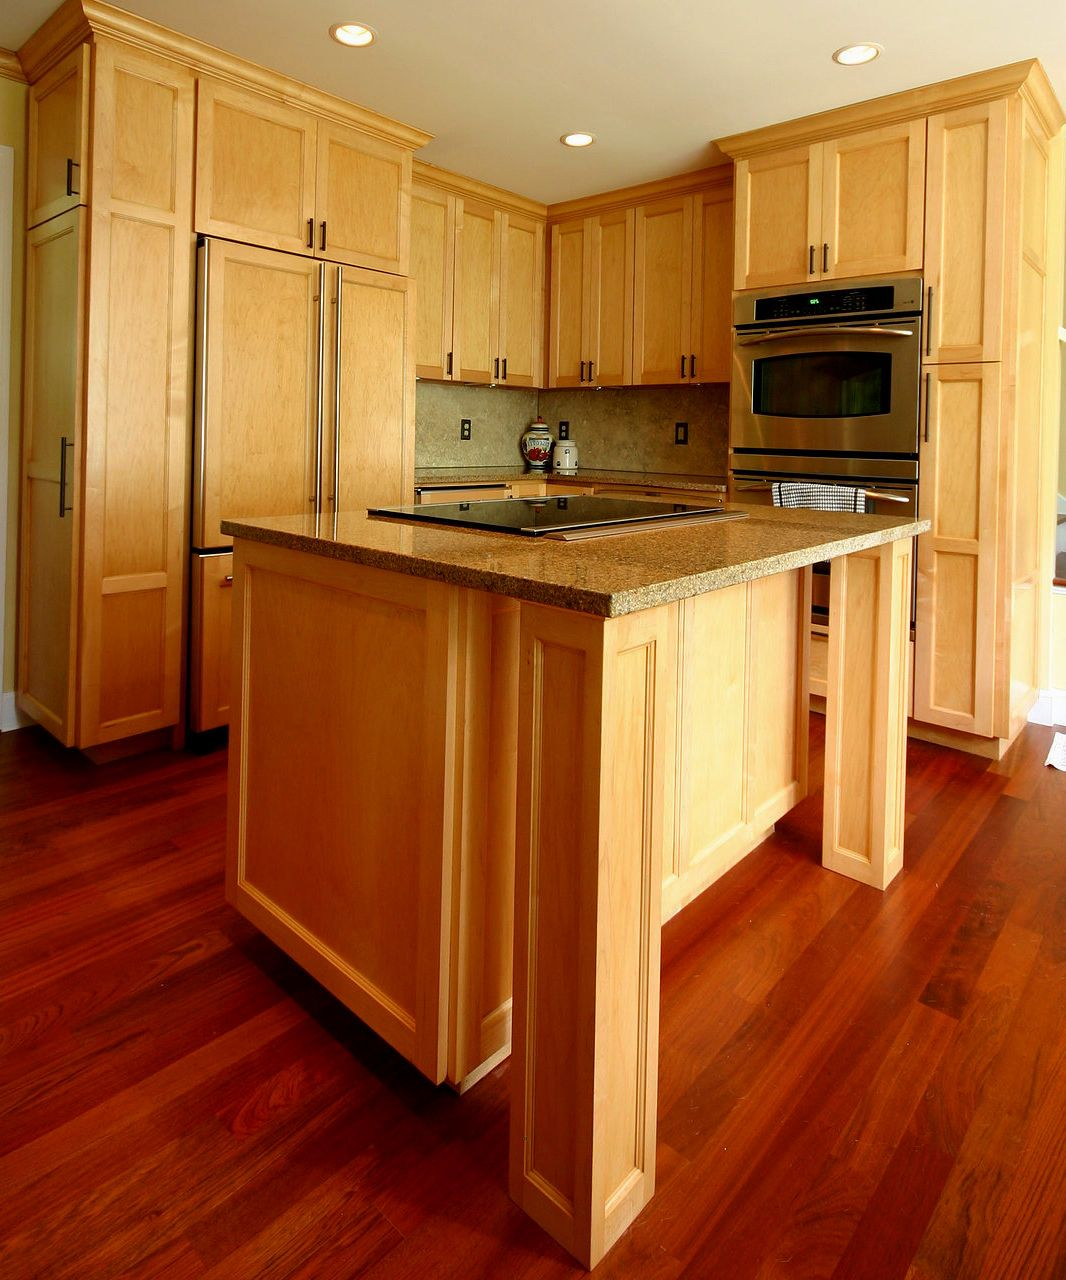 Image result for maple kitchen cabinets with dark wood ... on Maple Kitchen Cabinets With Dark Wood Floors Dark Countertops  id=39812